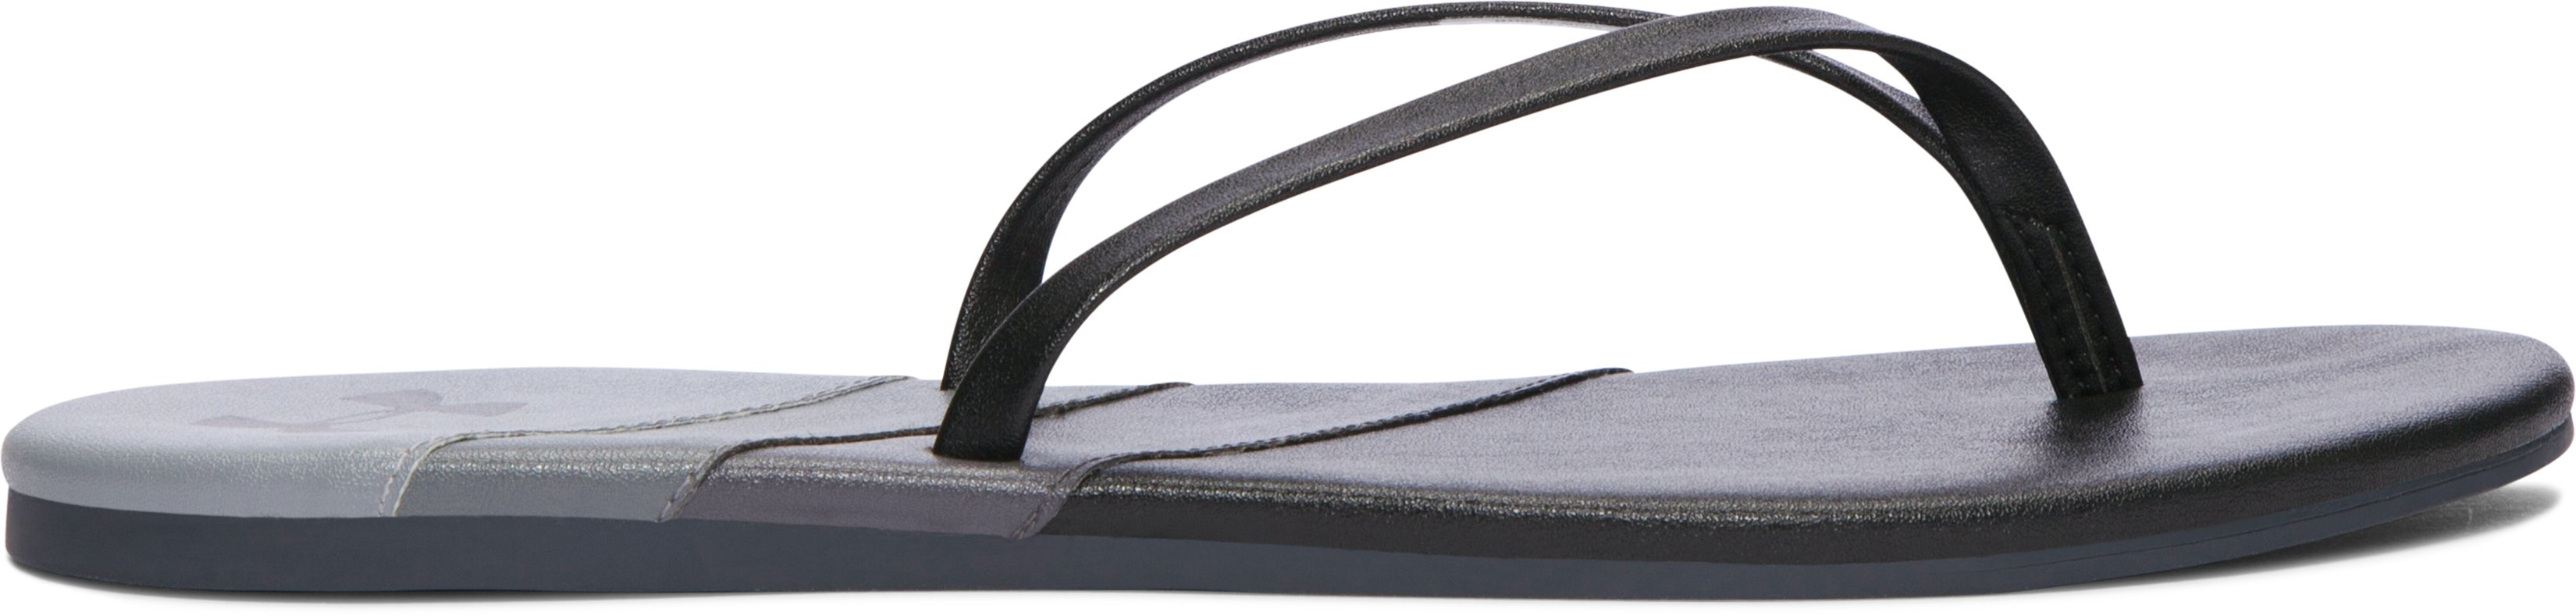 Women's UA Lakeshore Drive Sandals, Black